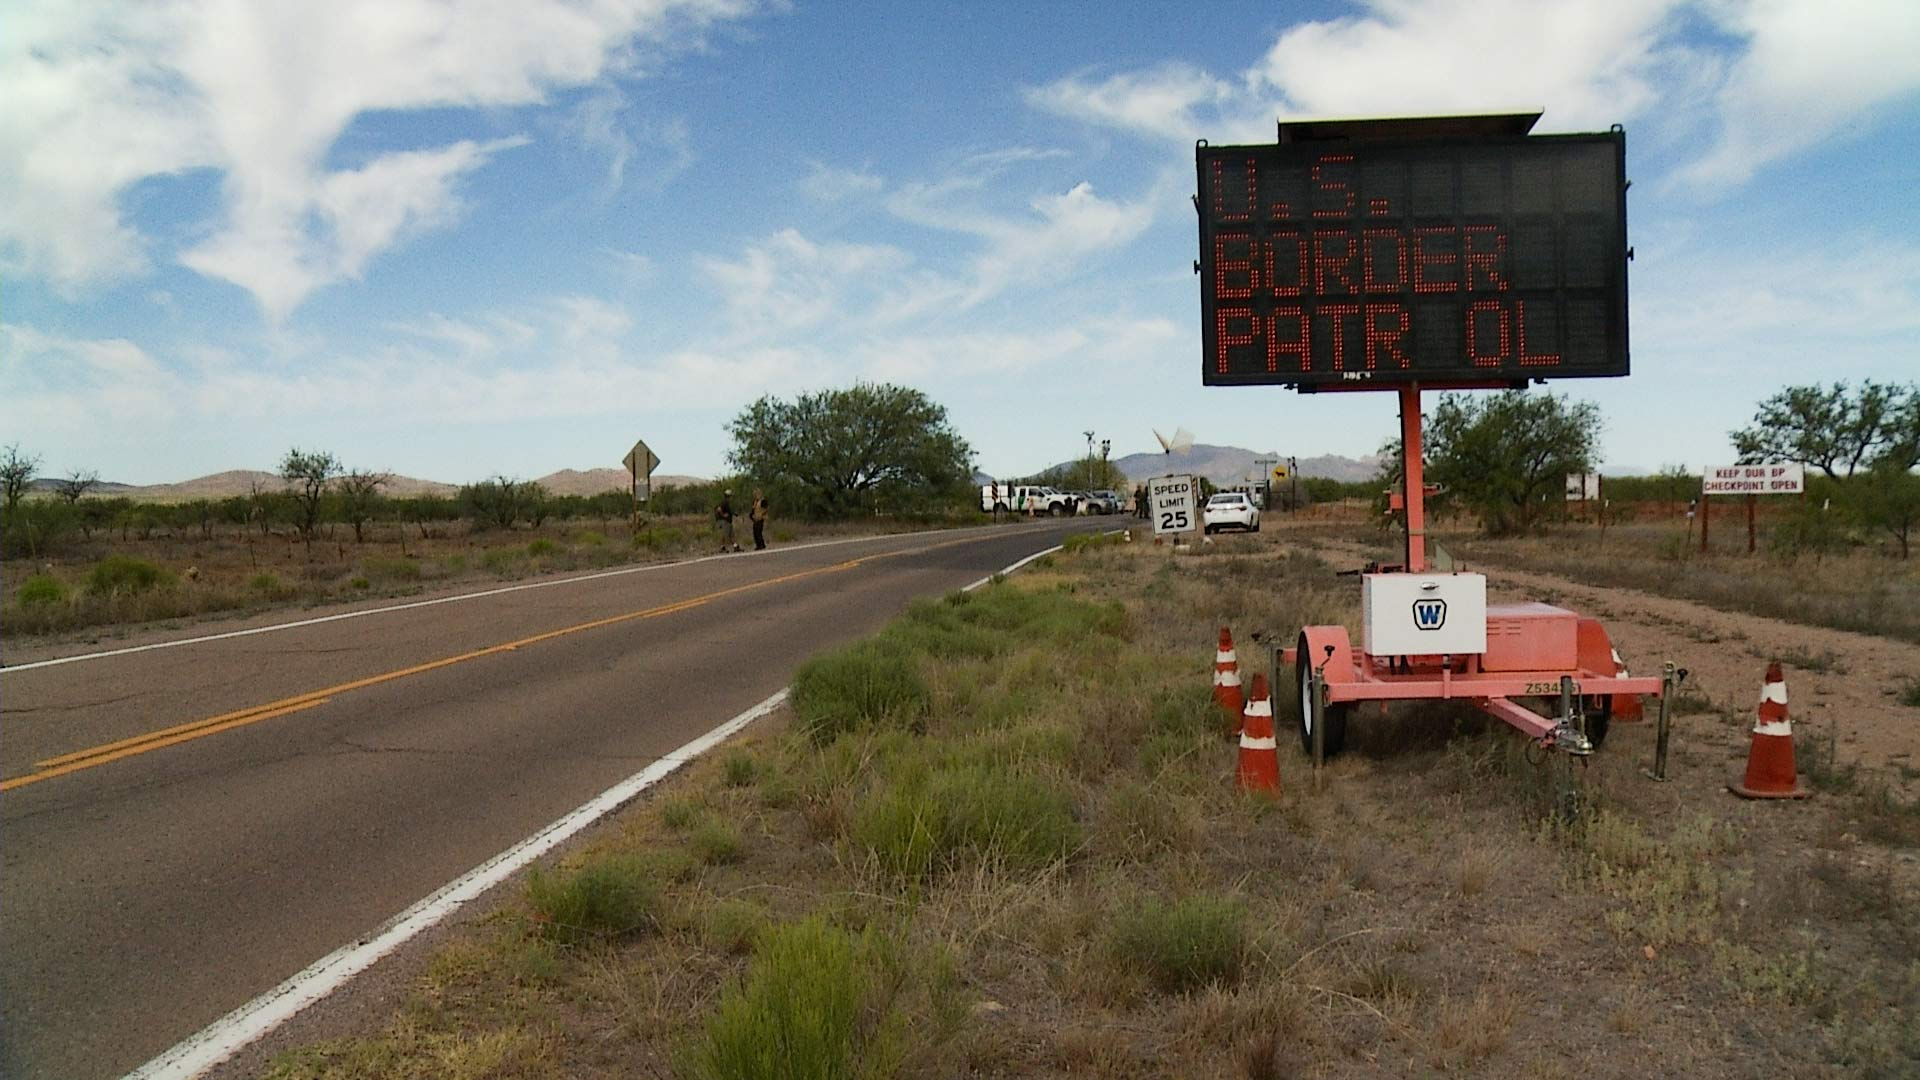 Border Patrol checkpoint near Arivaca, Arizona, 2015.